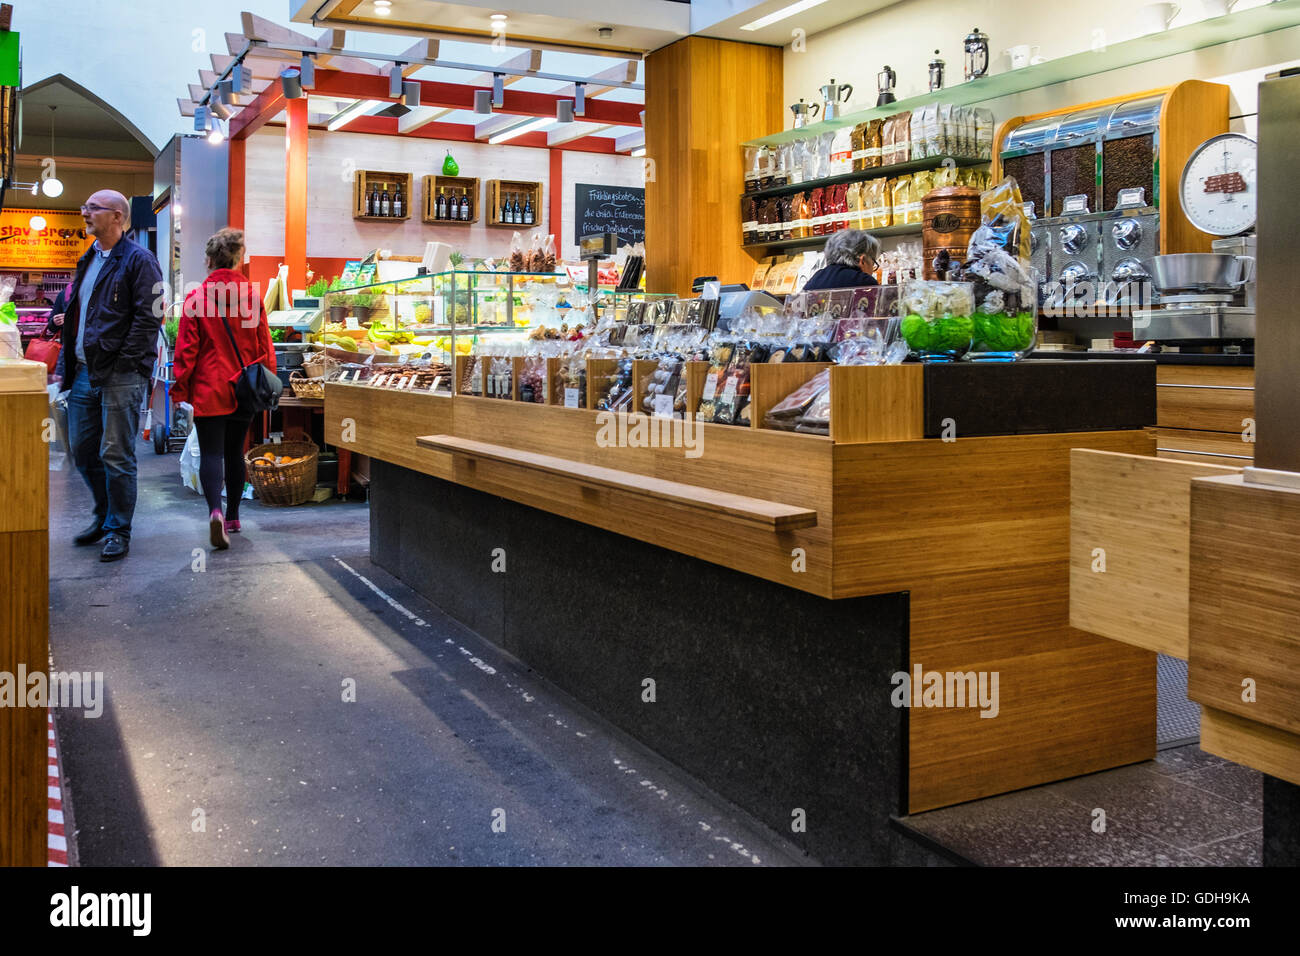 Germany, Stuttgart, Markthalle. Old market hall with stalls and shoppers - Stock Image